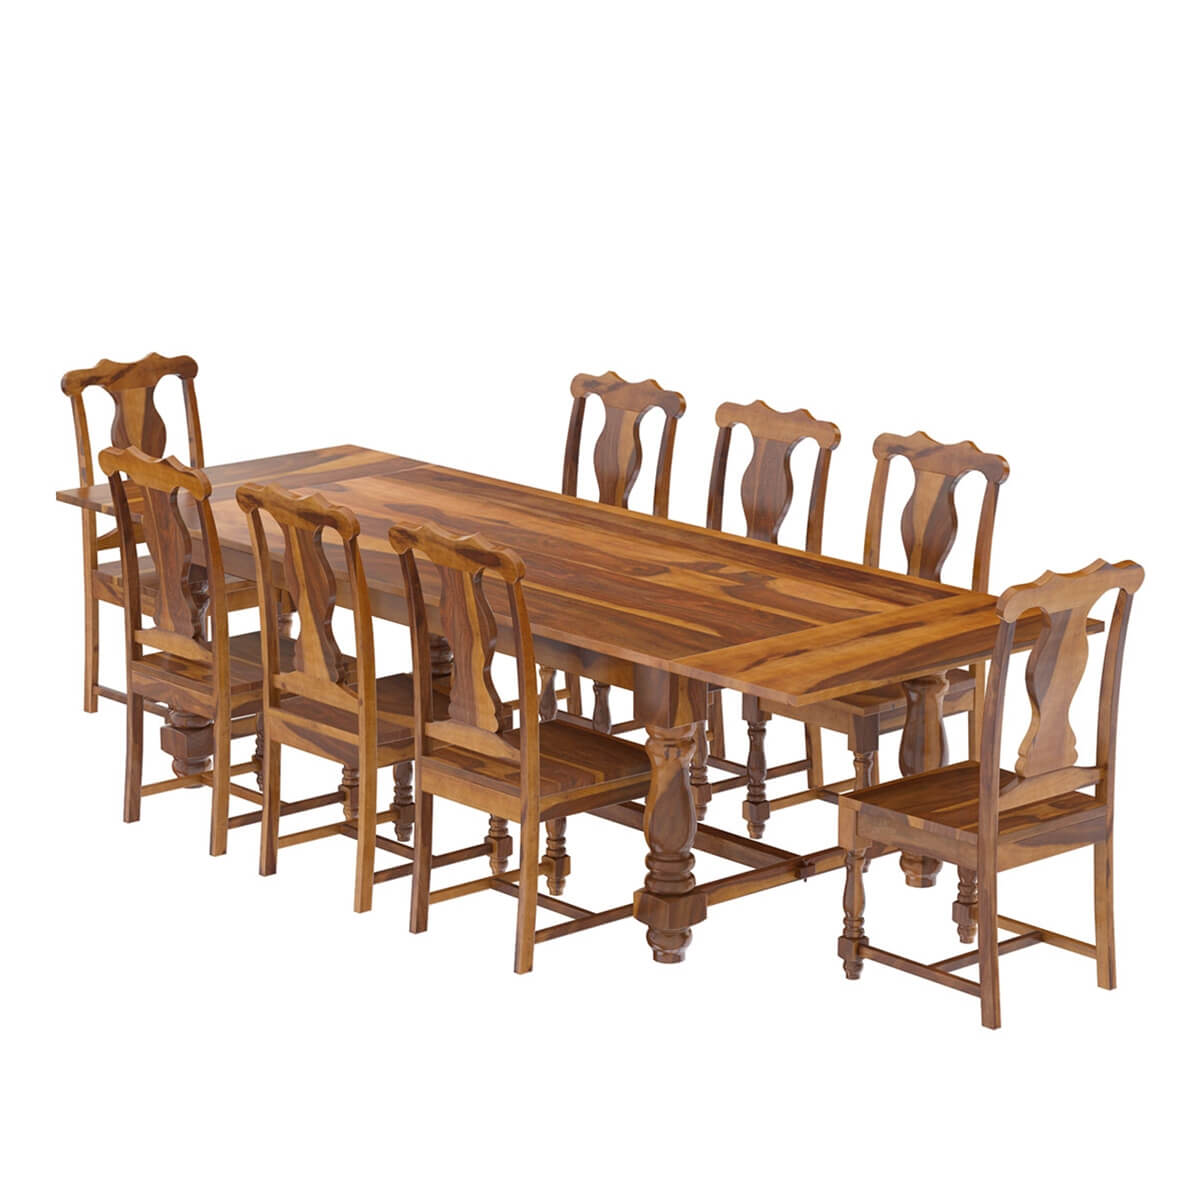 Rustic solid wood dining table chair set furniture w extension - Solid wood furniture ...